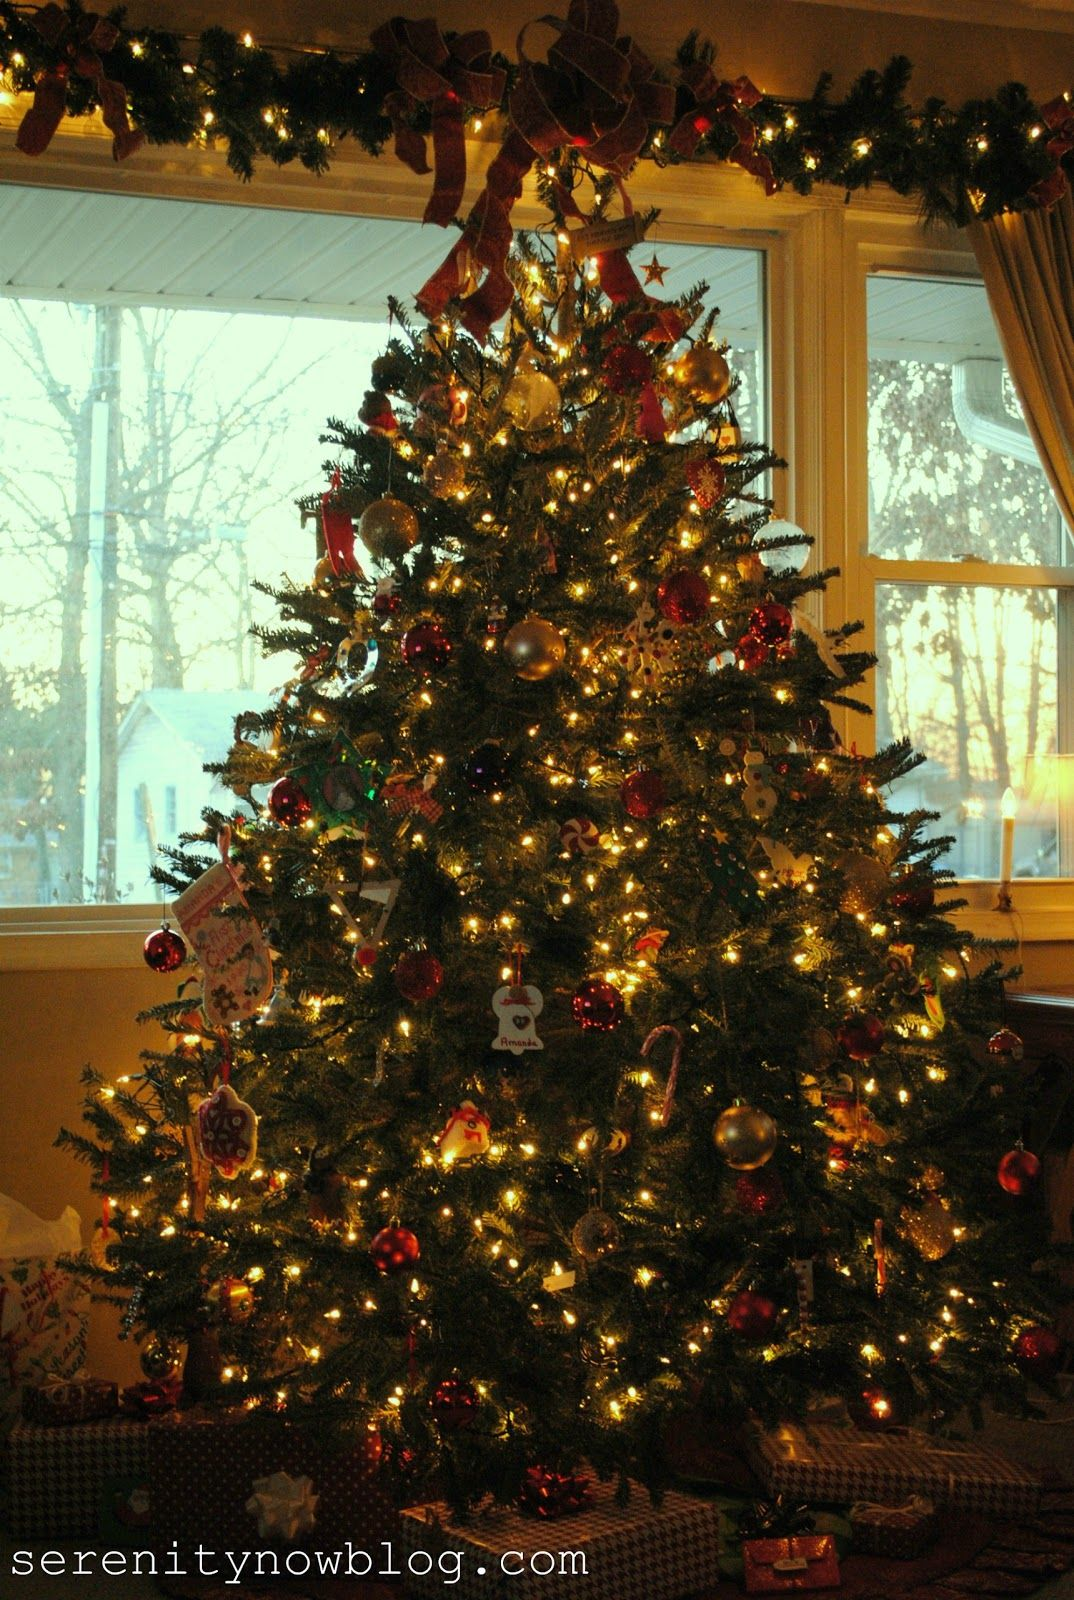 Your real tree in that front window looks beautiful ...